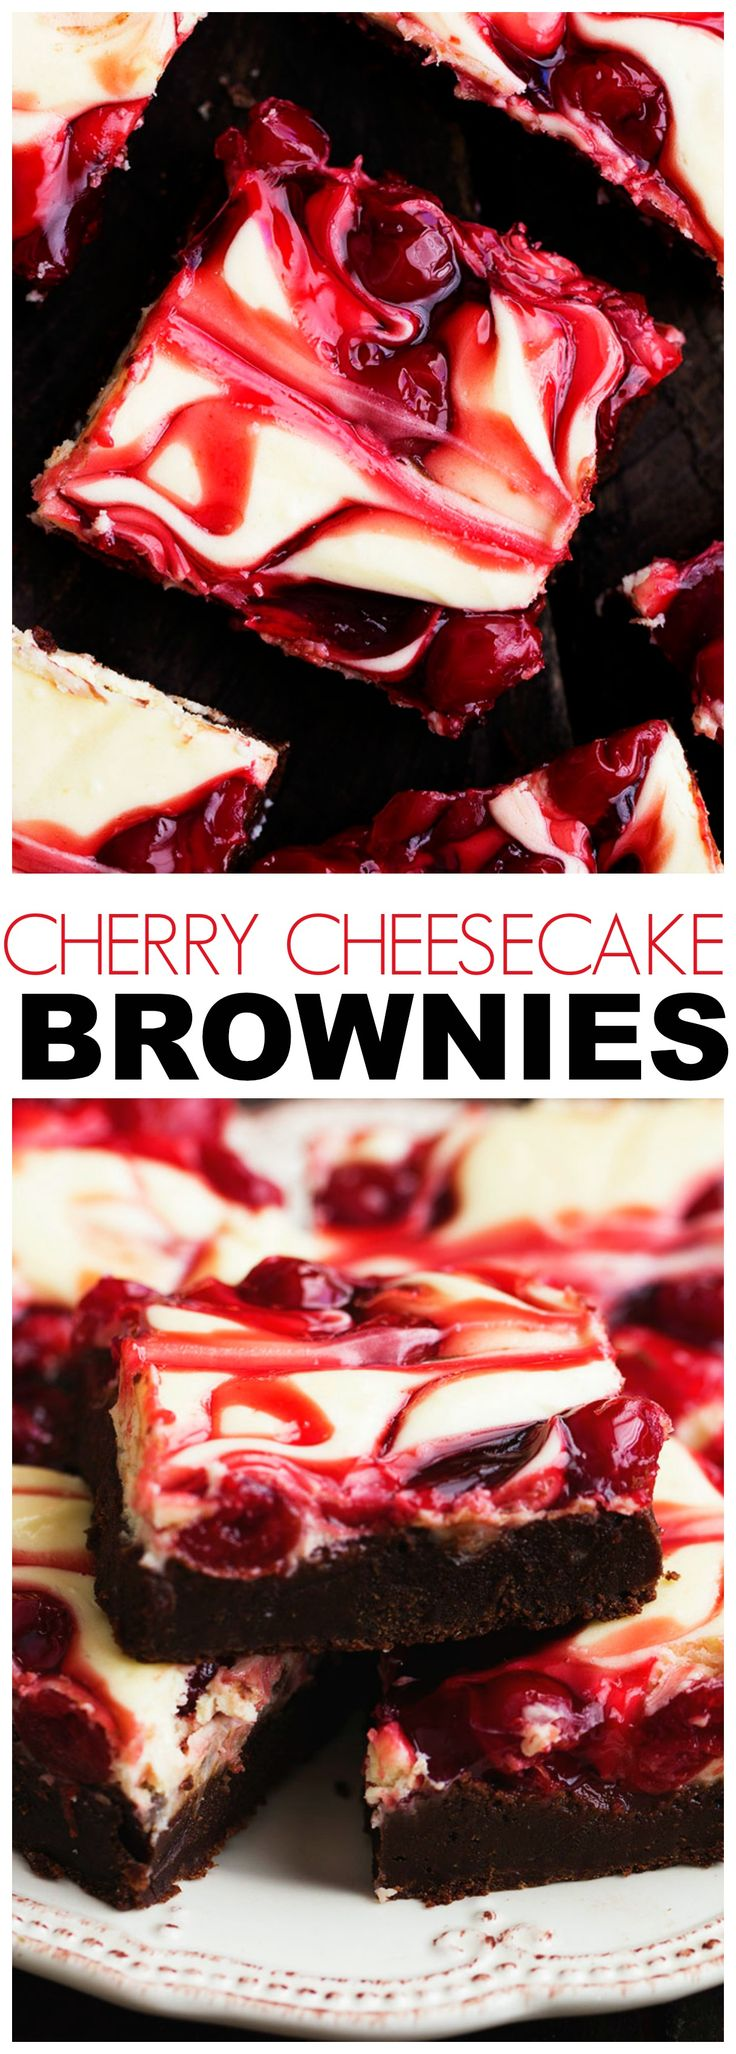 Cherry Cheesecake Brownies are one of the BEST brownies you will make! Three…